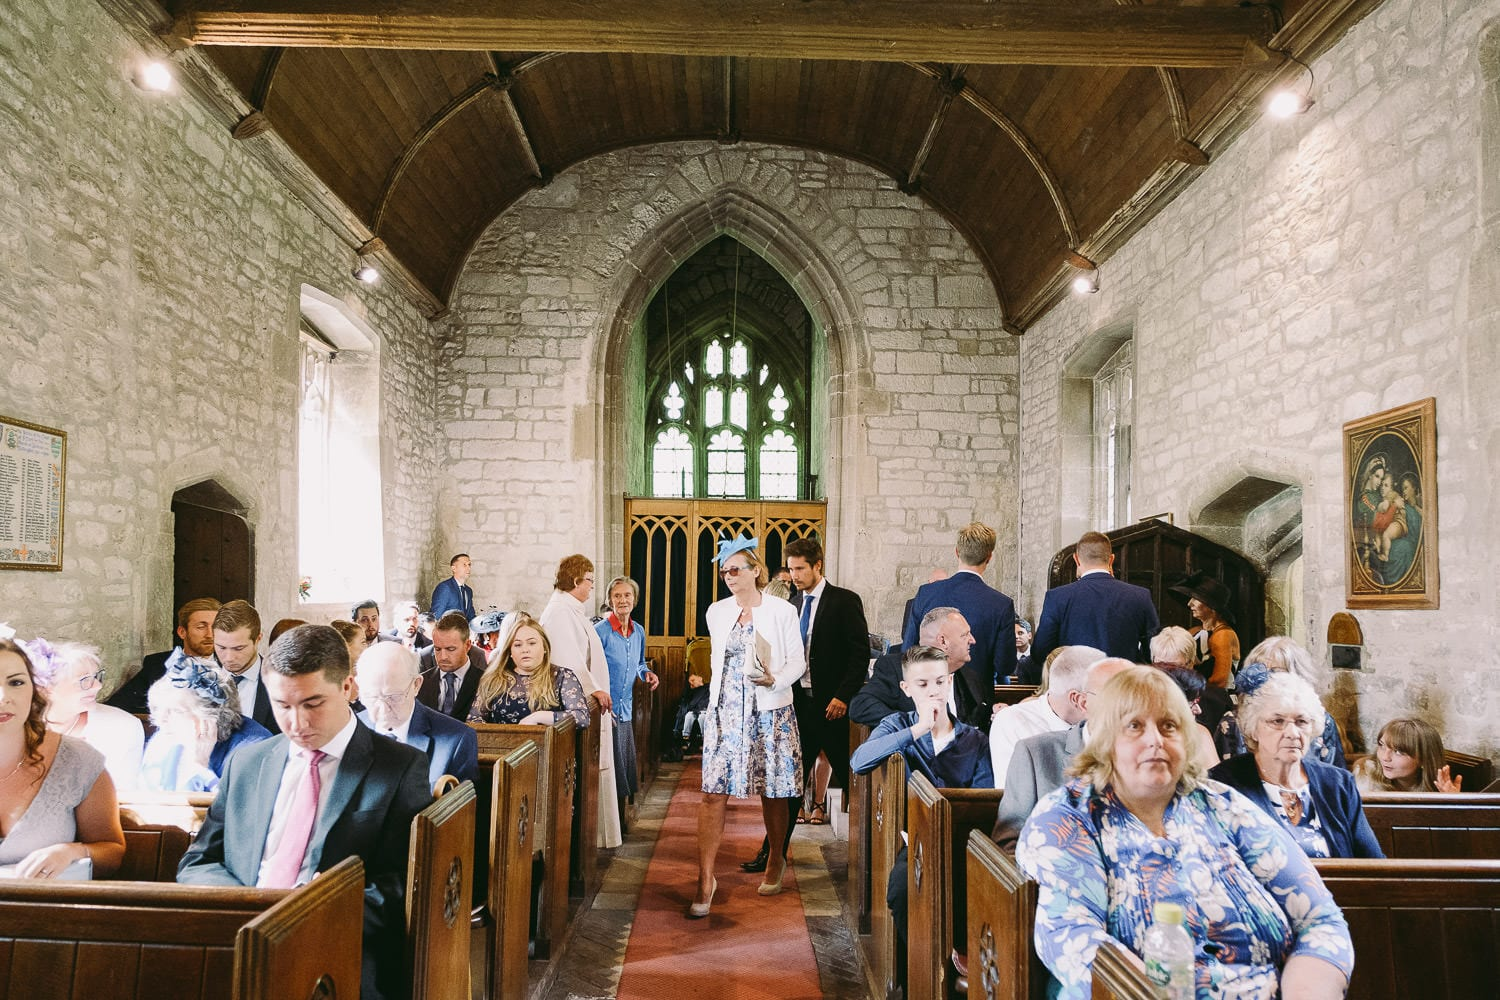 The guests arrive at the church